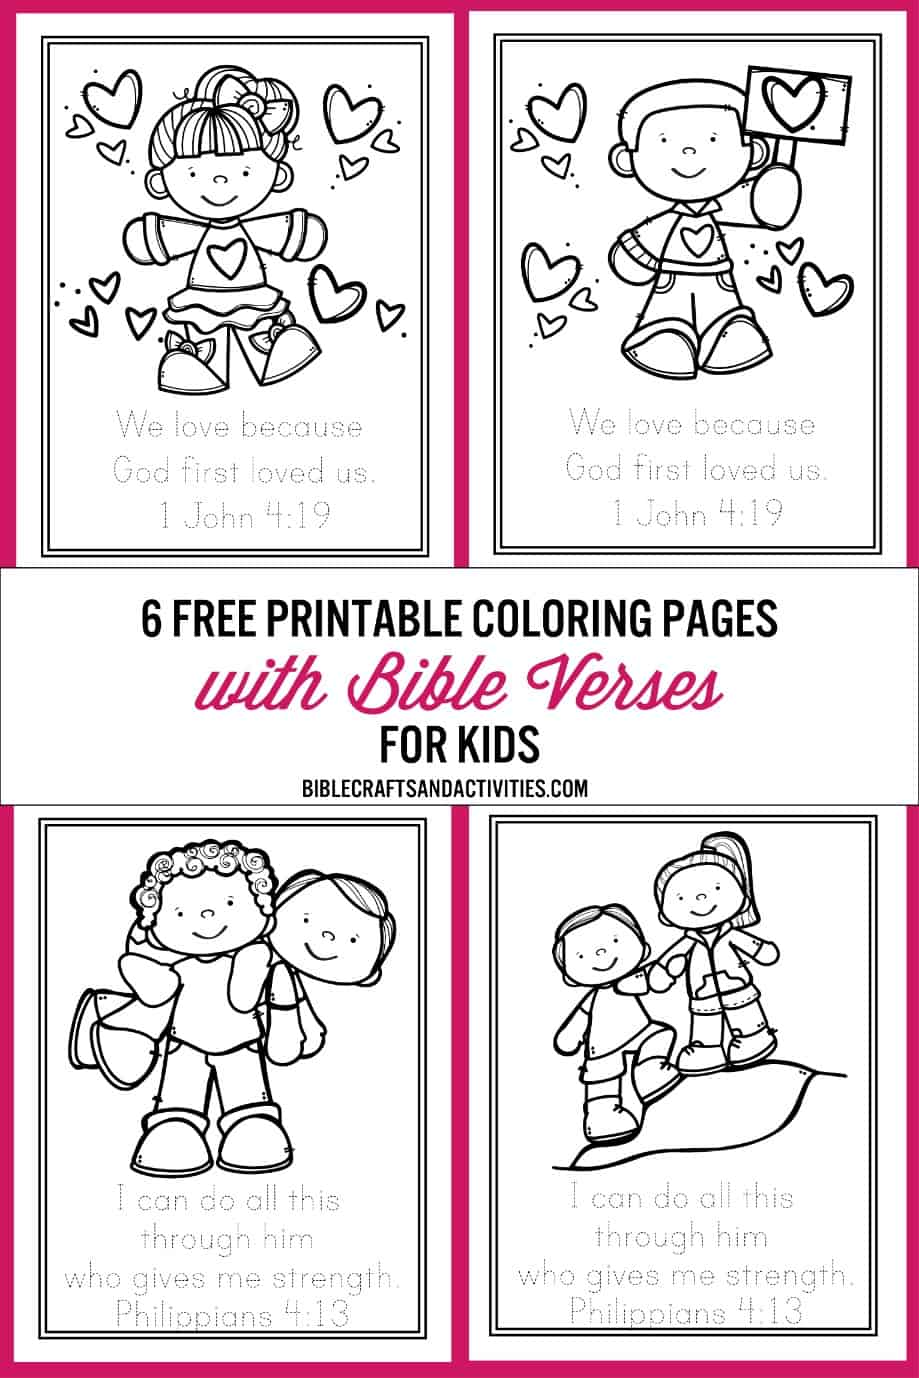 - Free Bible Verse Coloring Pages - Bible Crafts And Activities